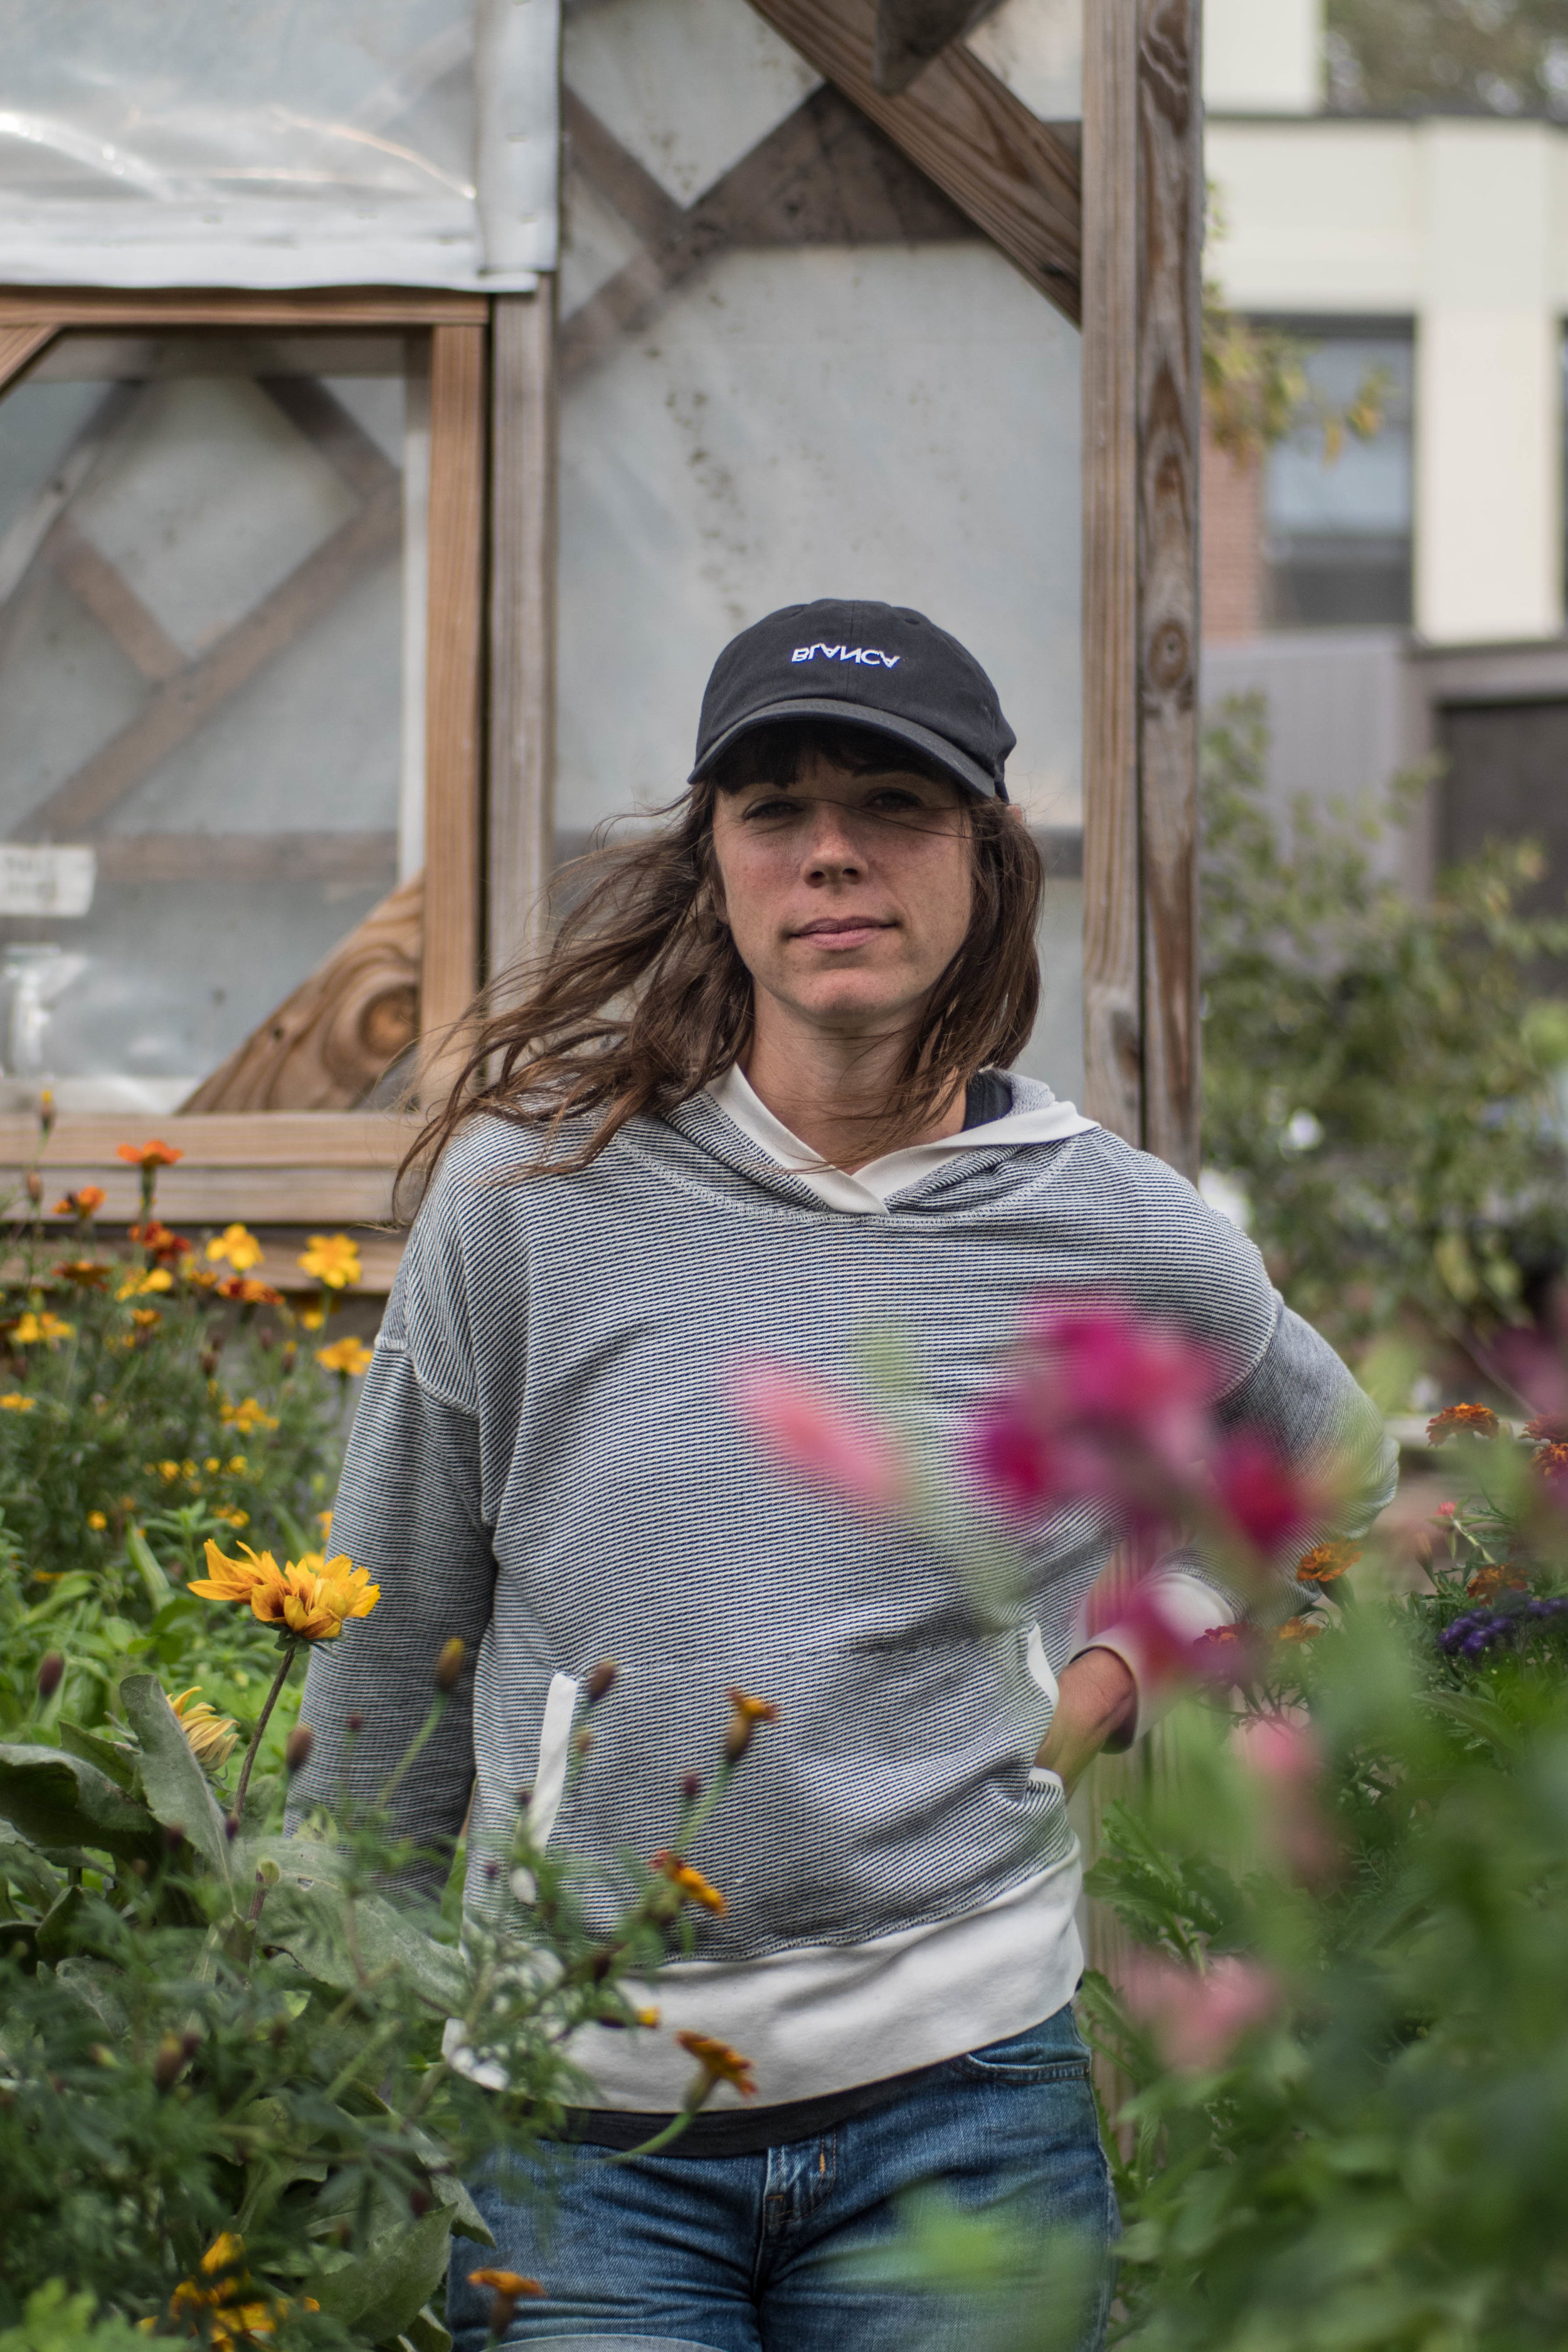 Melissa Metrick, the Roberta's gardener, has been with the restaurant since 2010 and teaches Intro to Urban Agriculture at New York University.